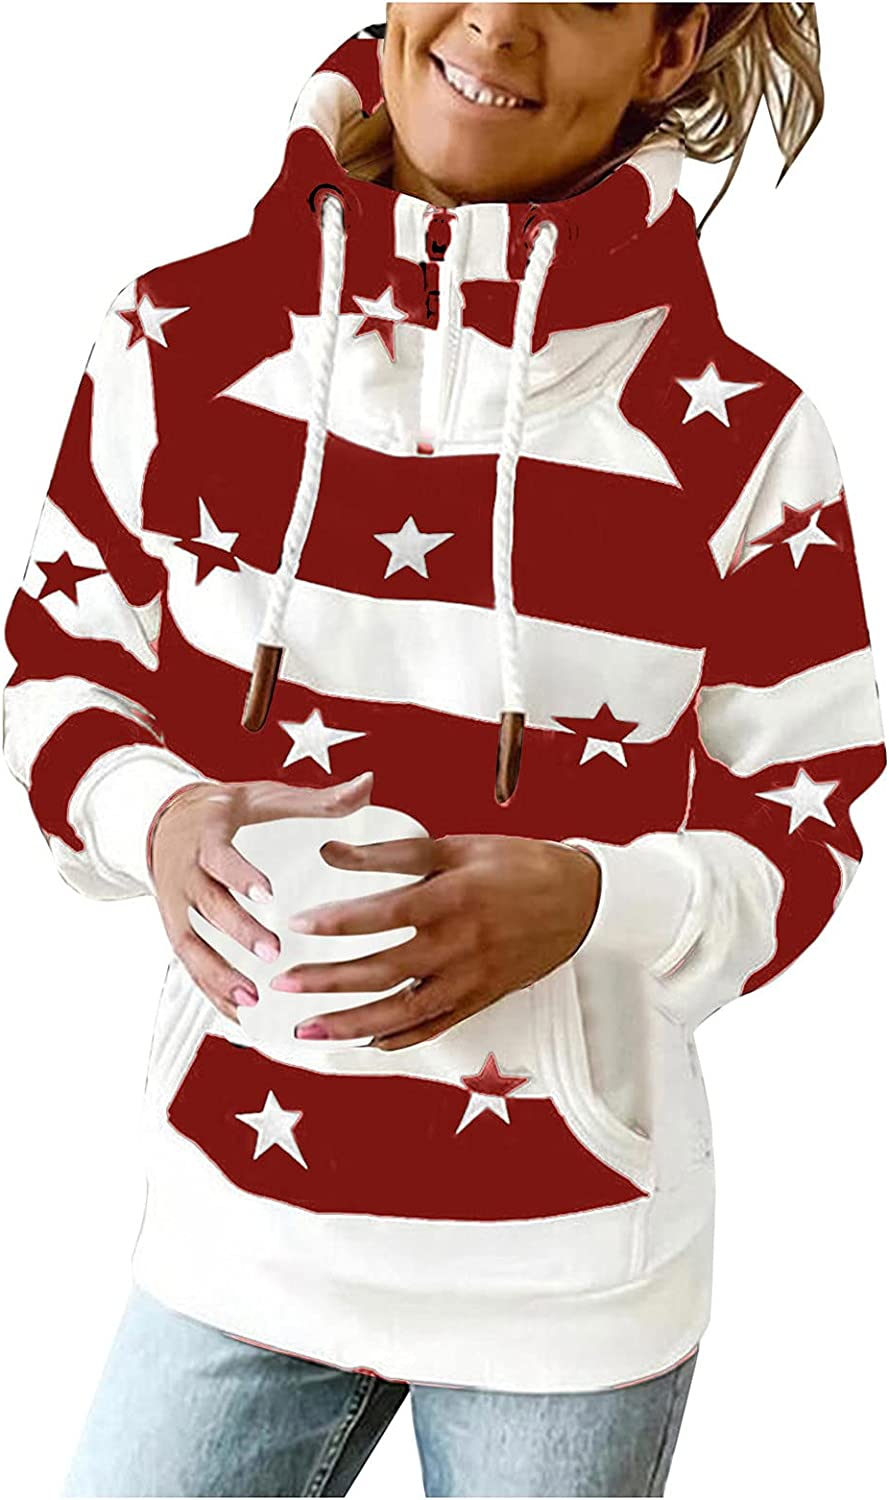 Hoodie for Women Fashion Long Sleeve Zip Up Sweatshirts Striped Lightweight Pullover Solid Casual Jacket with Pockets